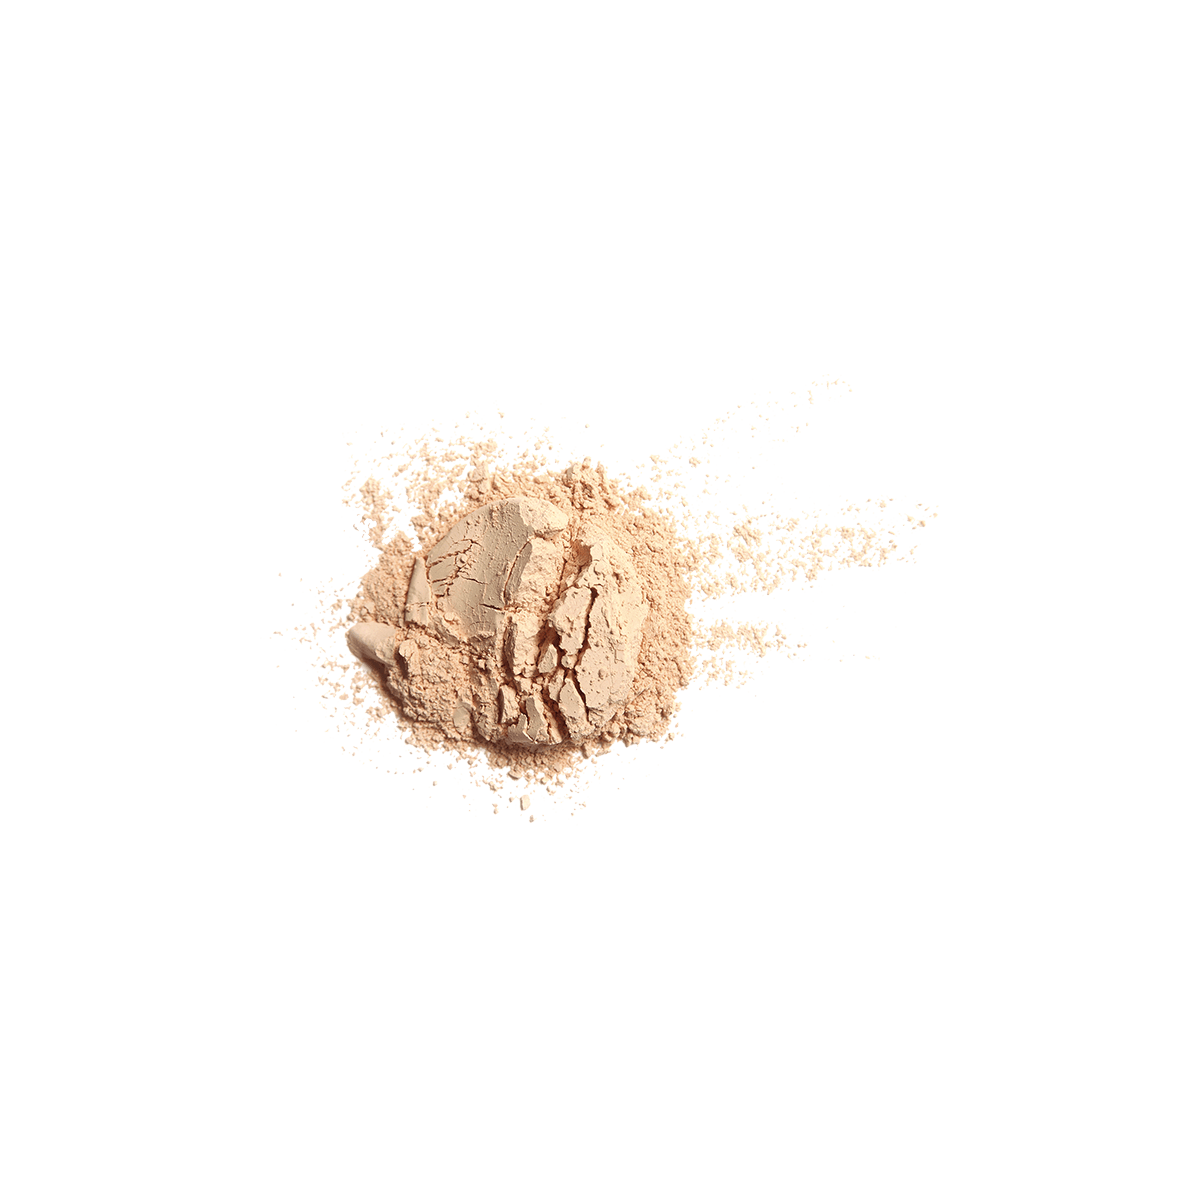 collab-set-the-stage-ultra-fine-loose-setting-powder-sandbeige-shade.png